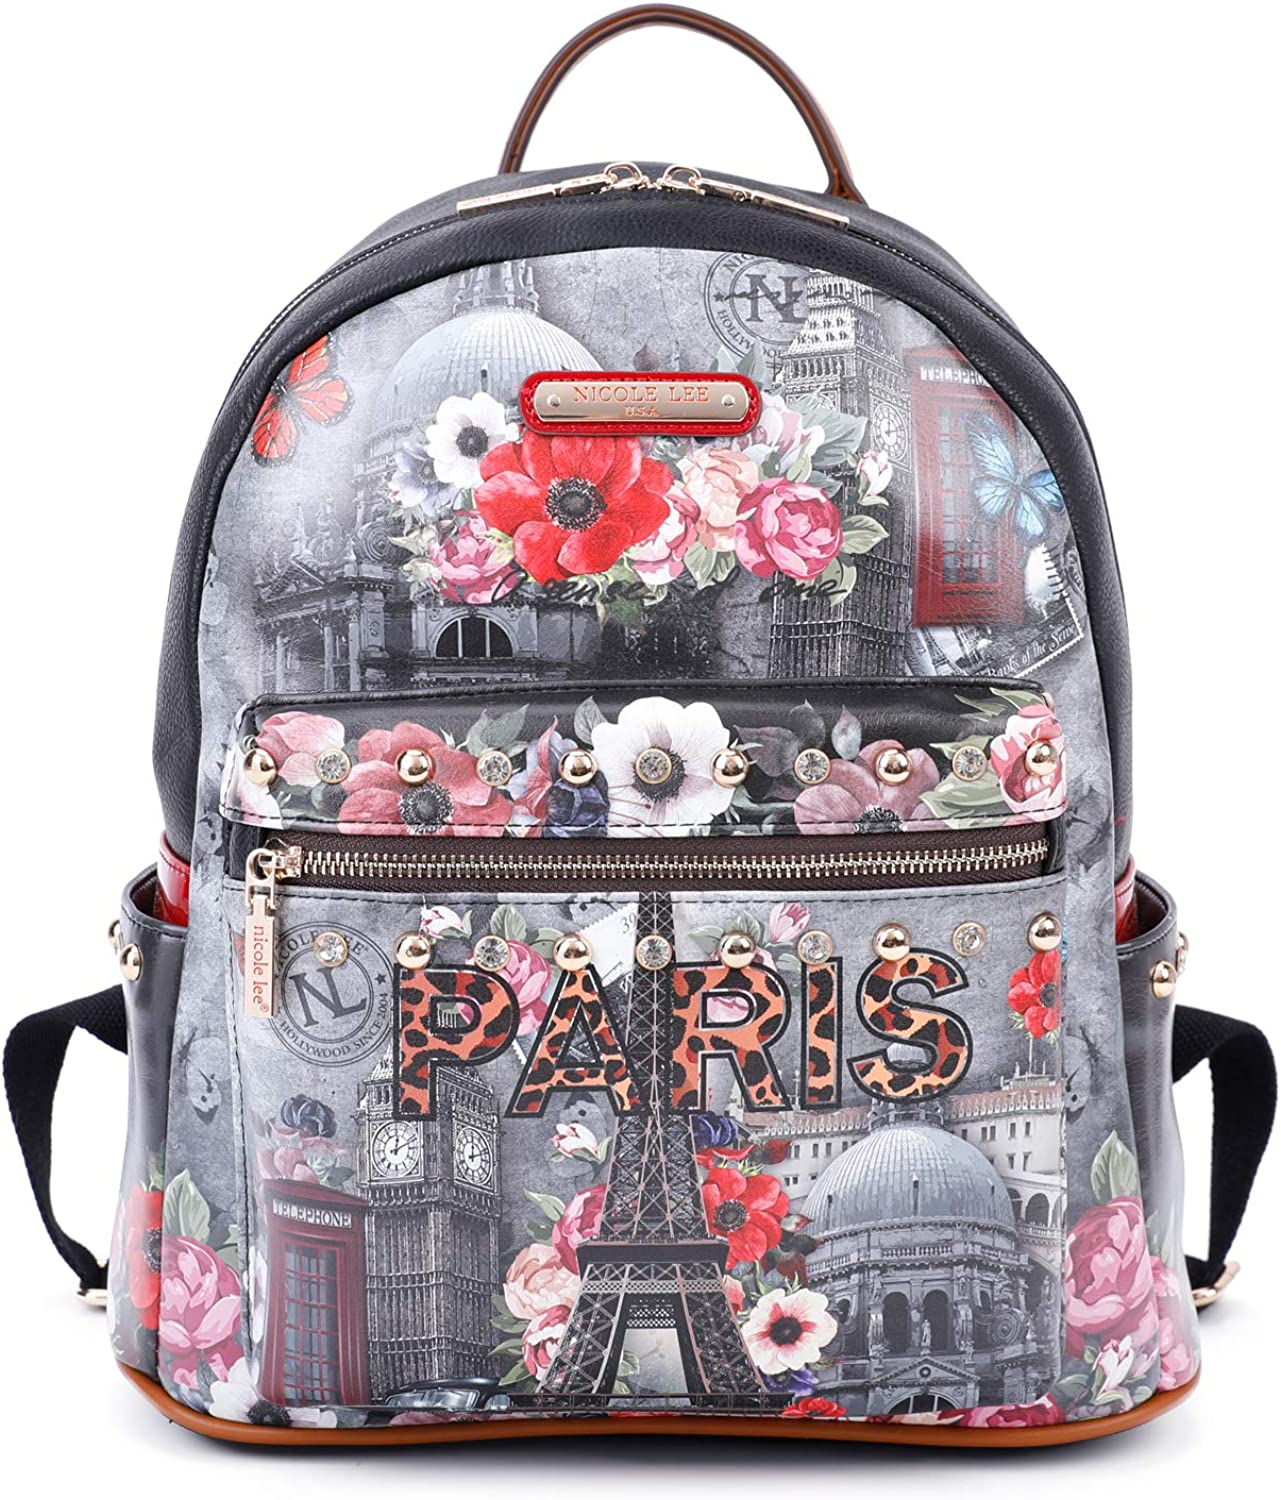 Women's Spacious Colorful Print Fashion Backpack